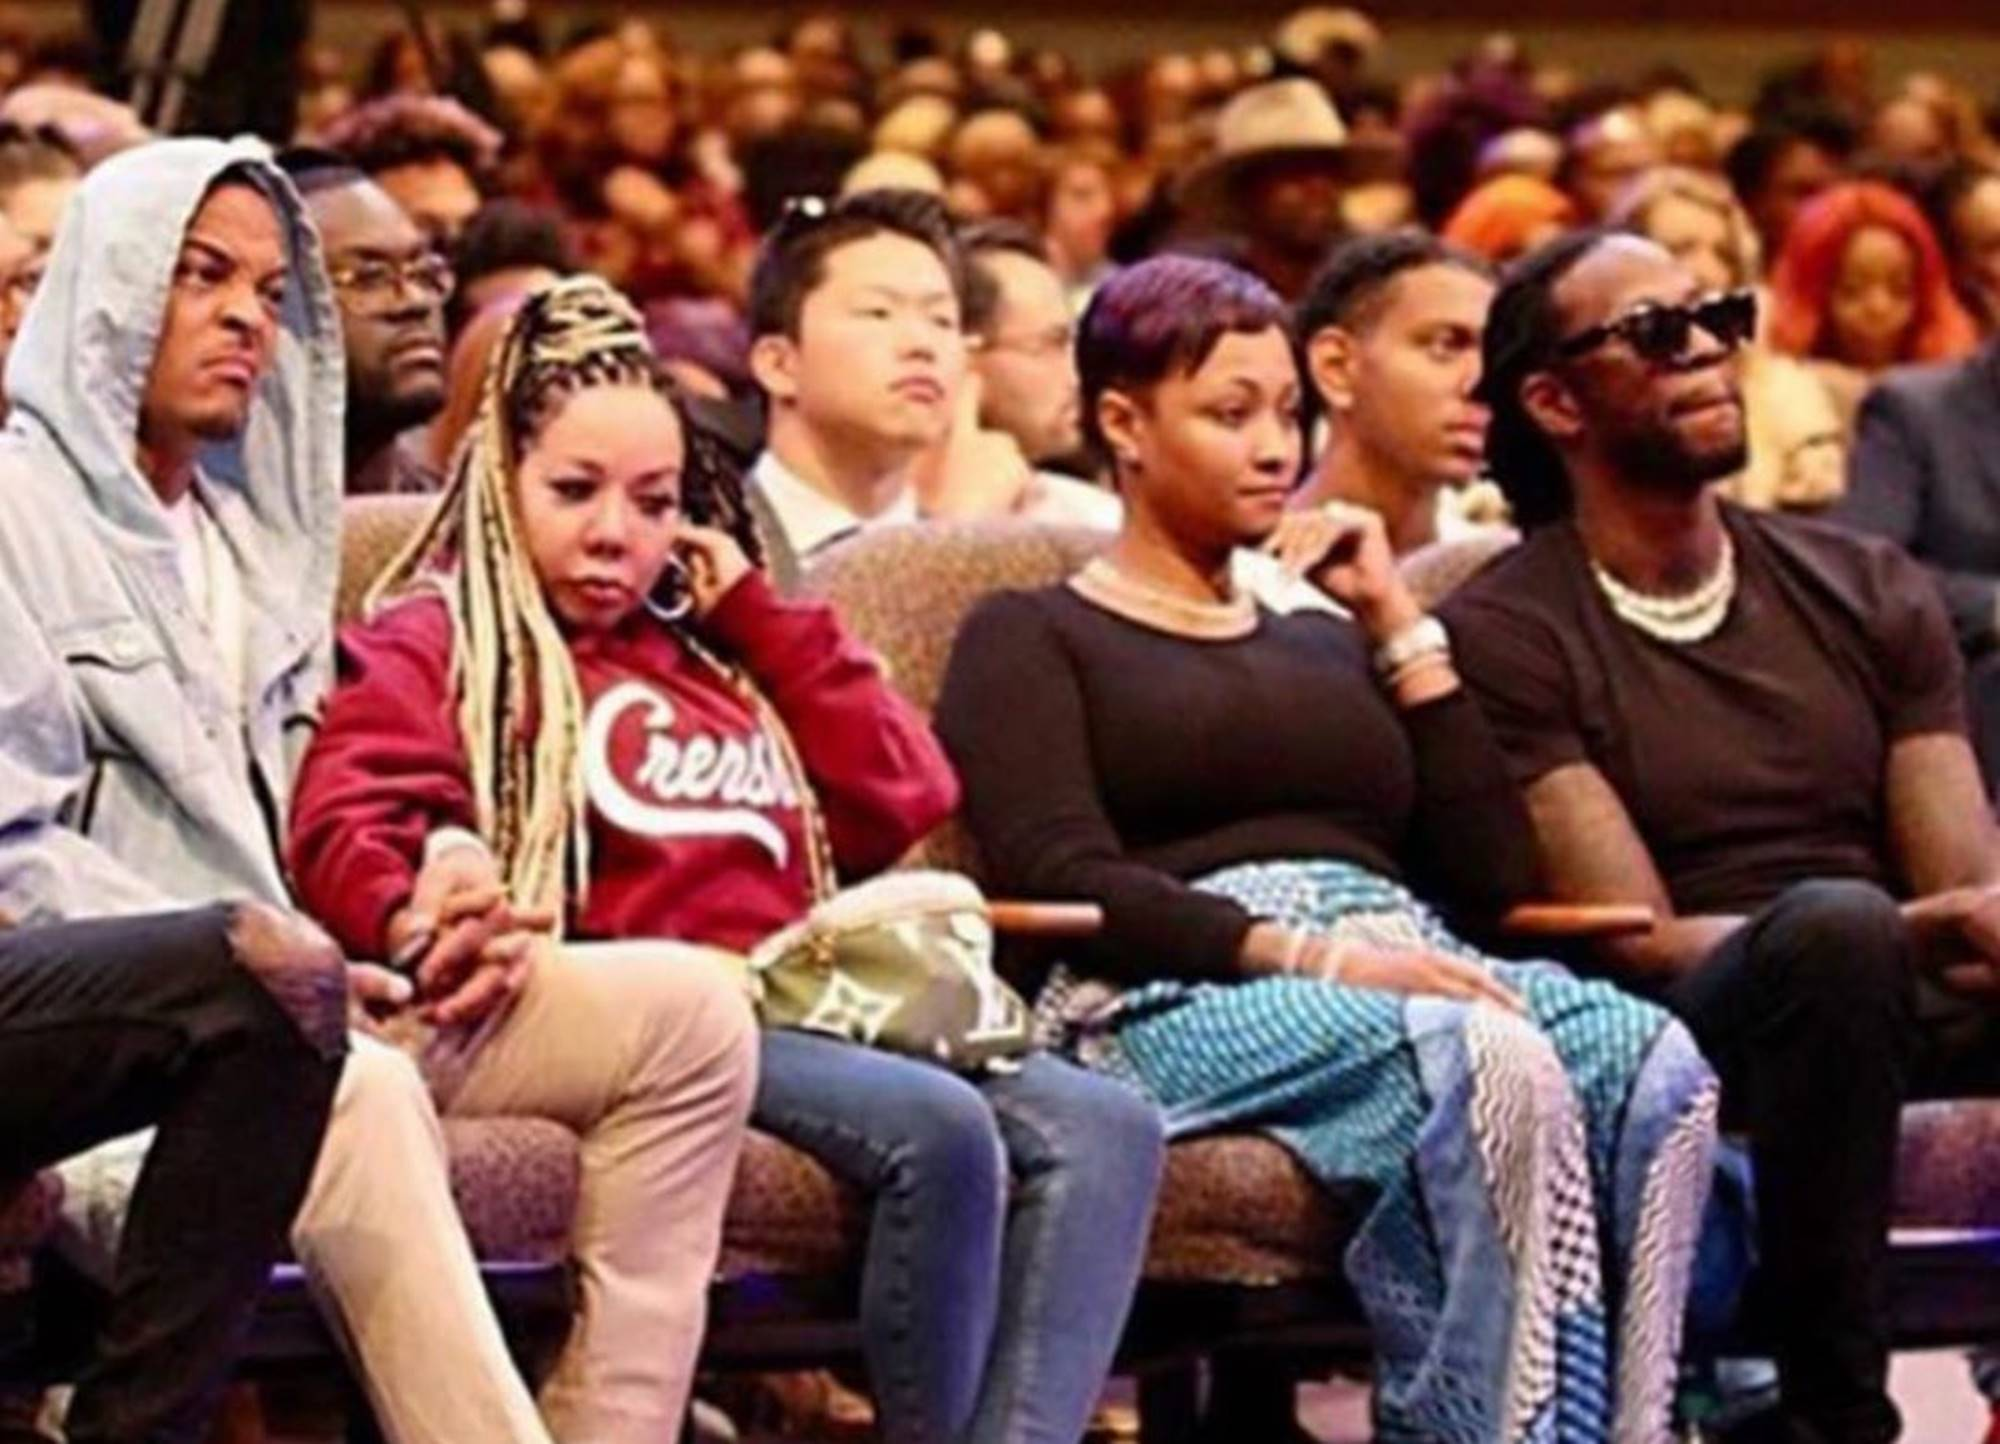 """""""t-i-finally-explains-why-he-looked-angry-and-disgusted-in-this-photo-with-tiny-harris-sitting-by-him-while-in-church"""""""